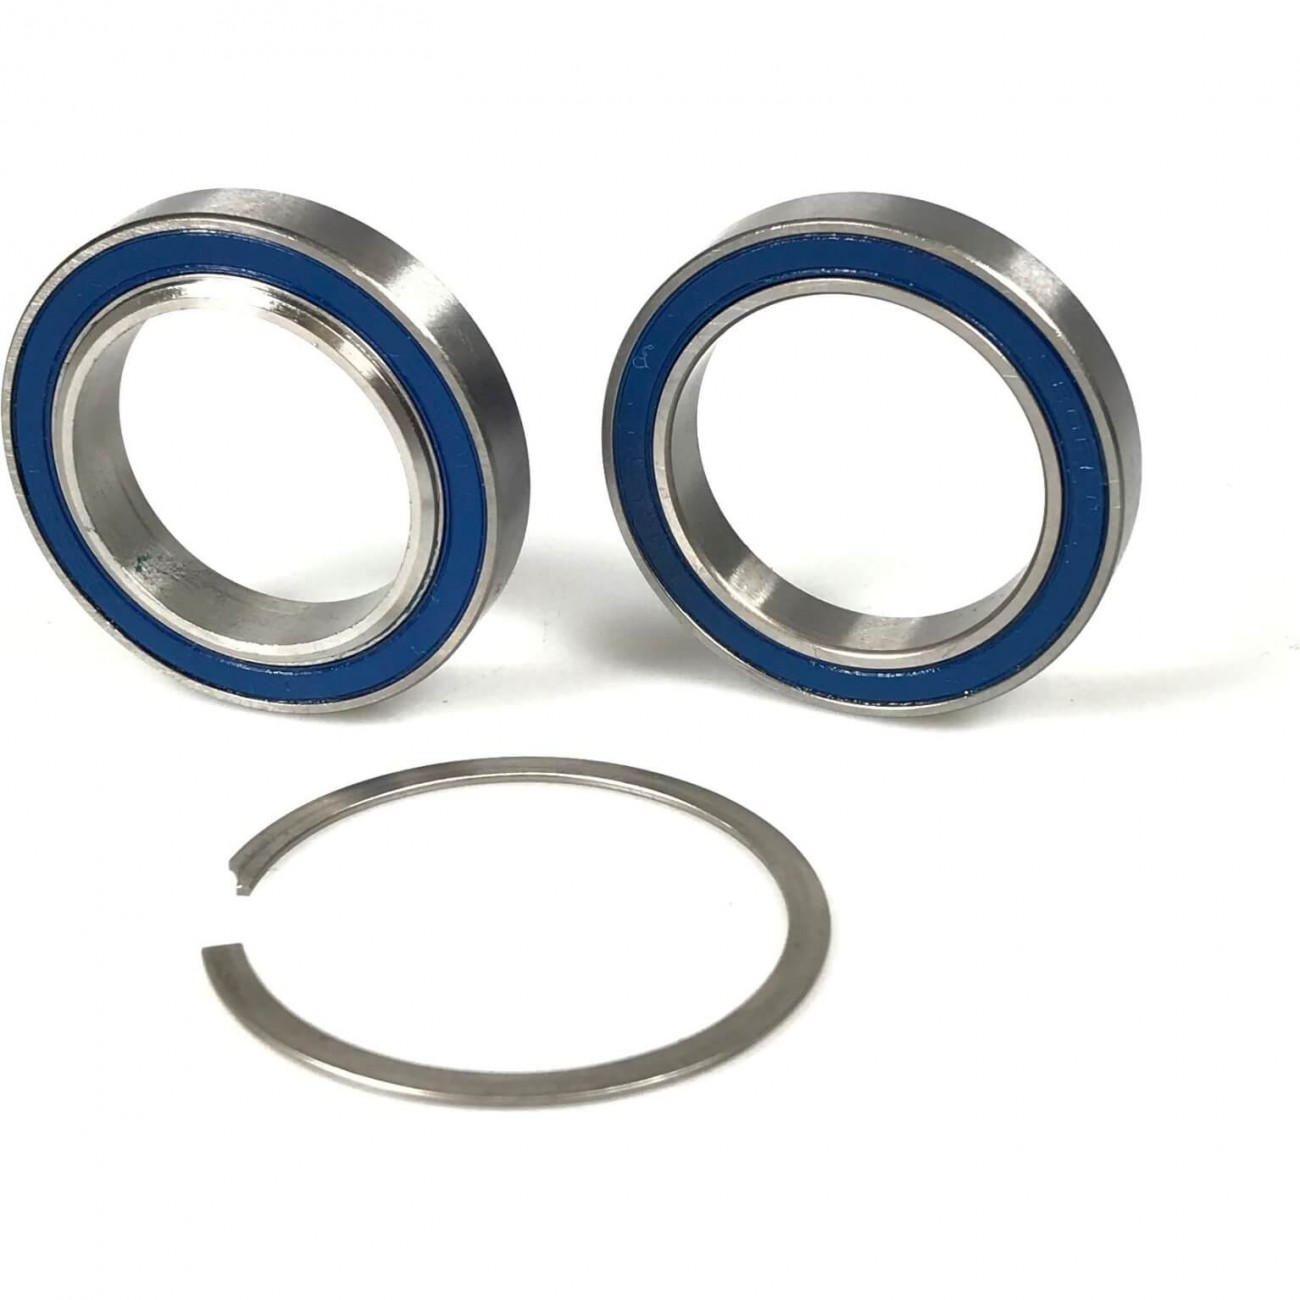 Praxis M30 lagers replacement kit voor cup bb